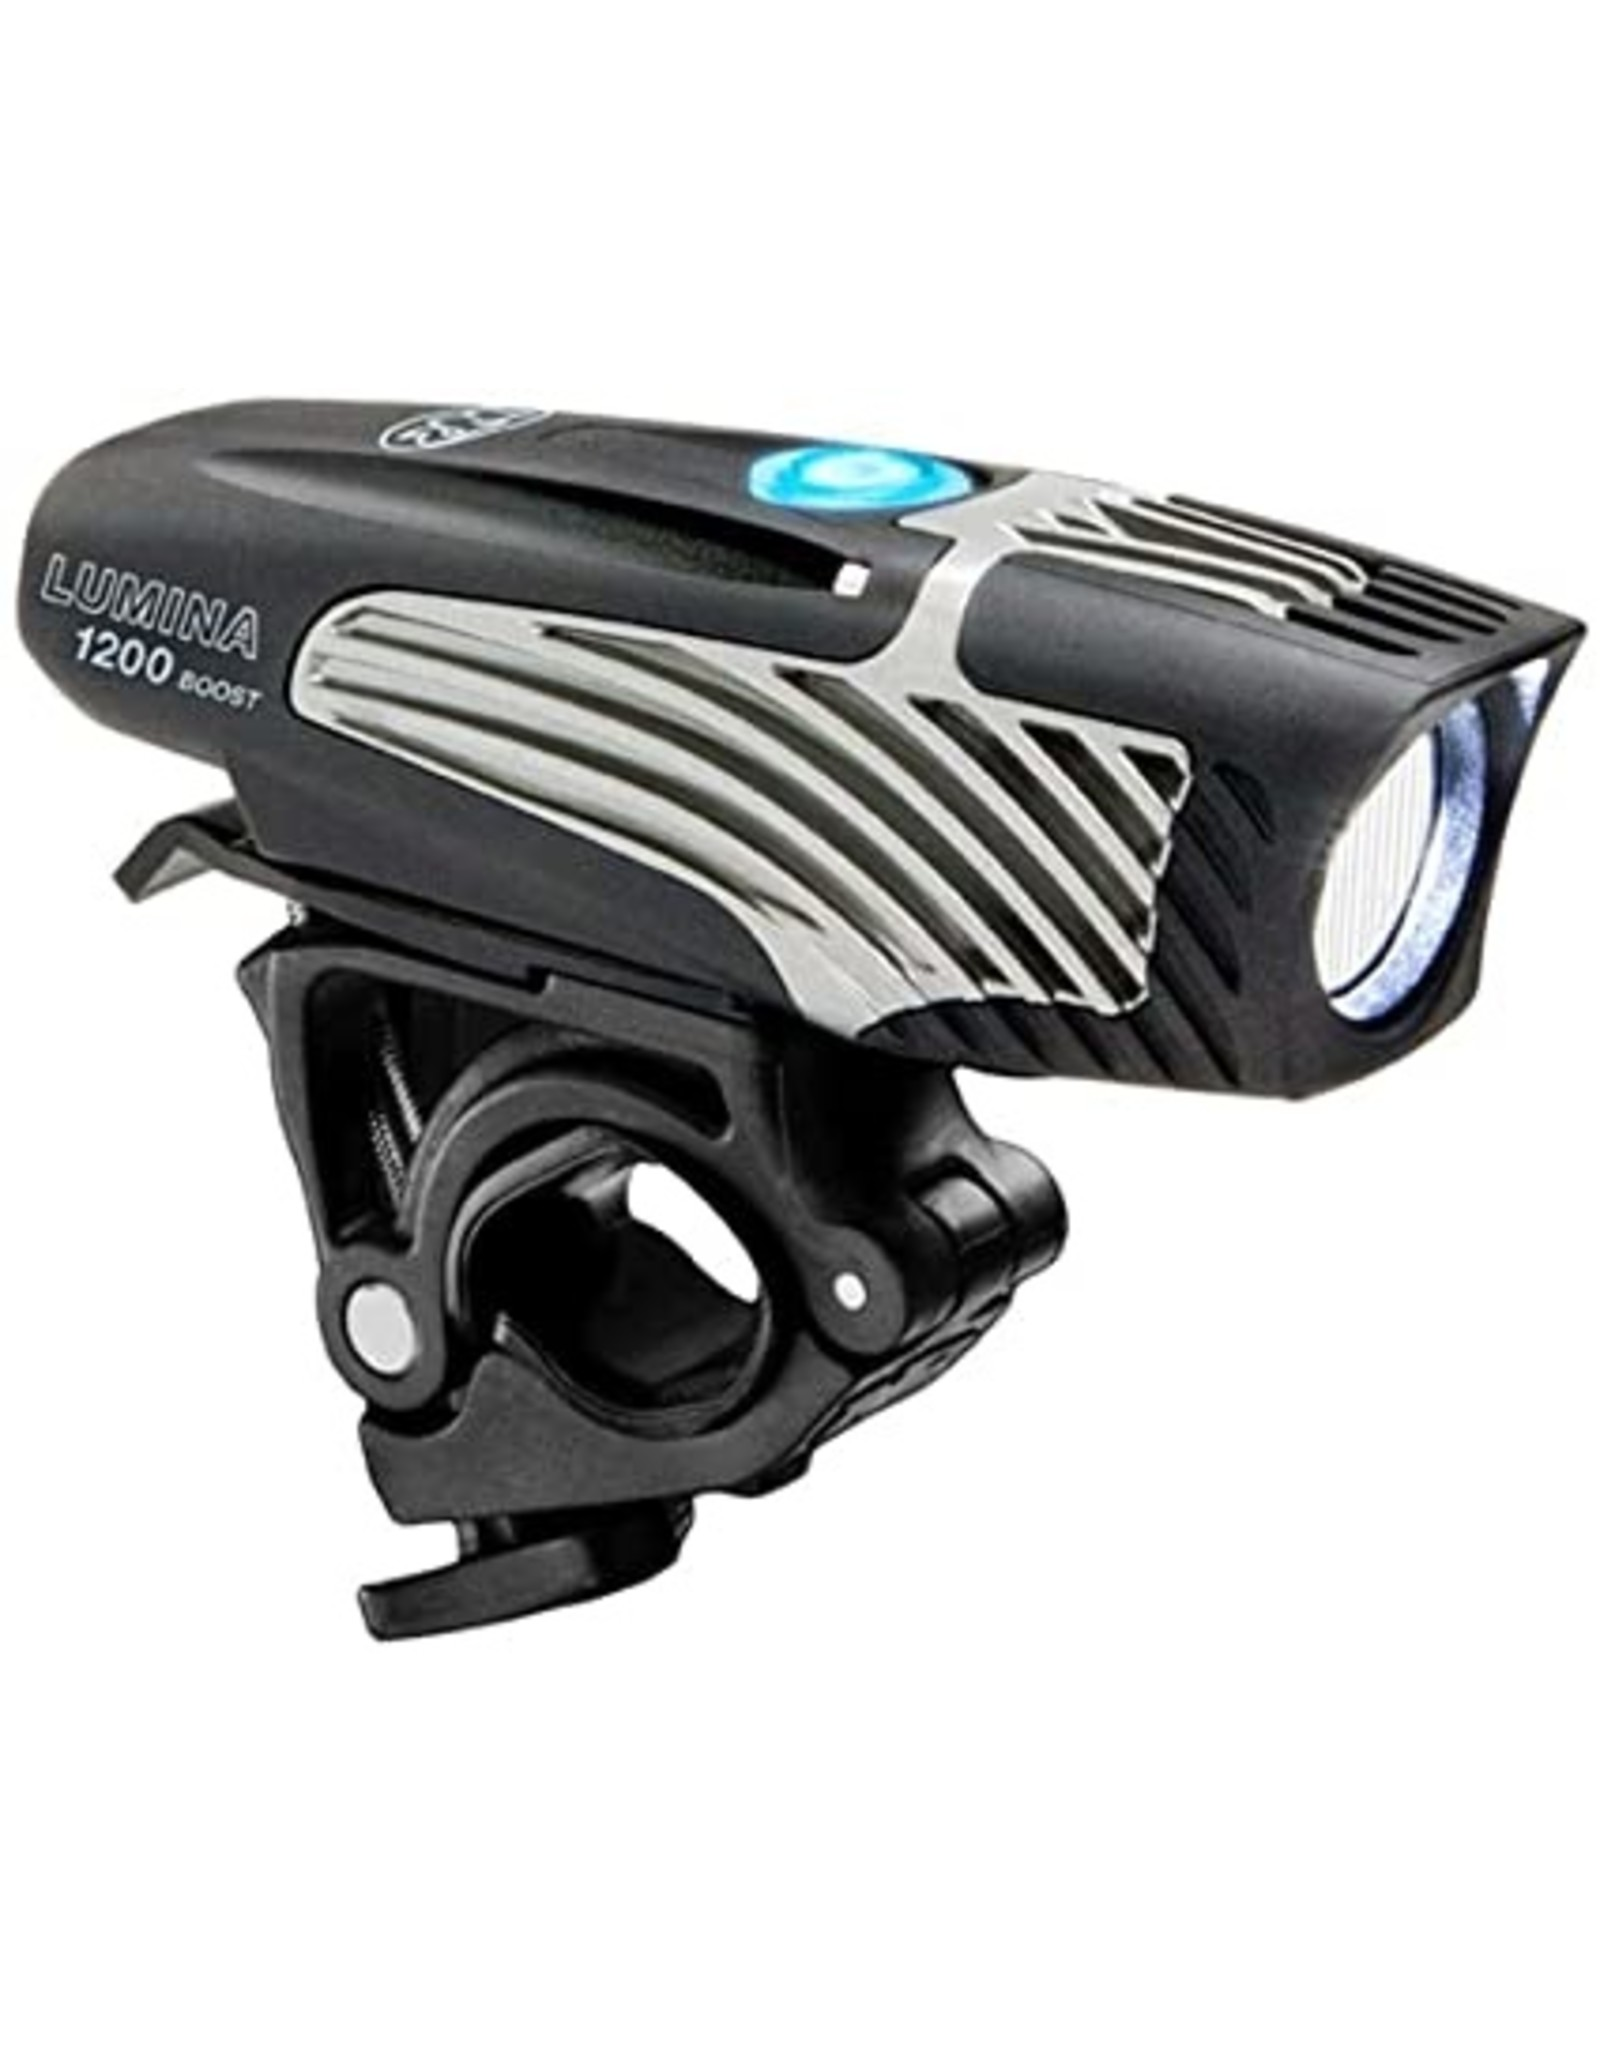 NiteRider NiteRider Rechargeable LED Light, Lumina 1200 Boost